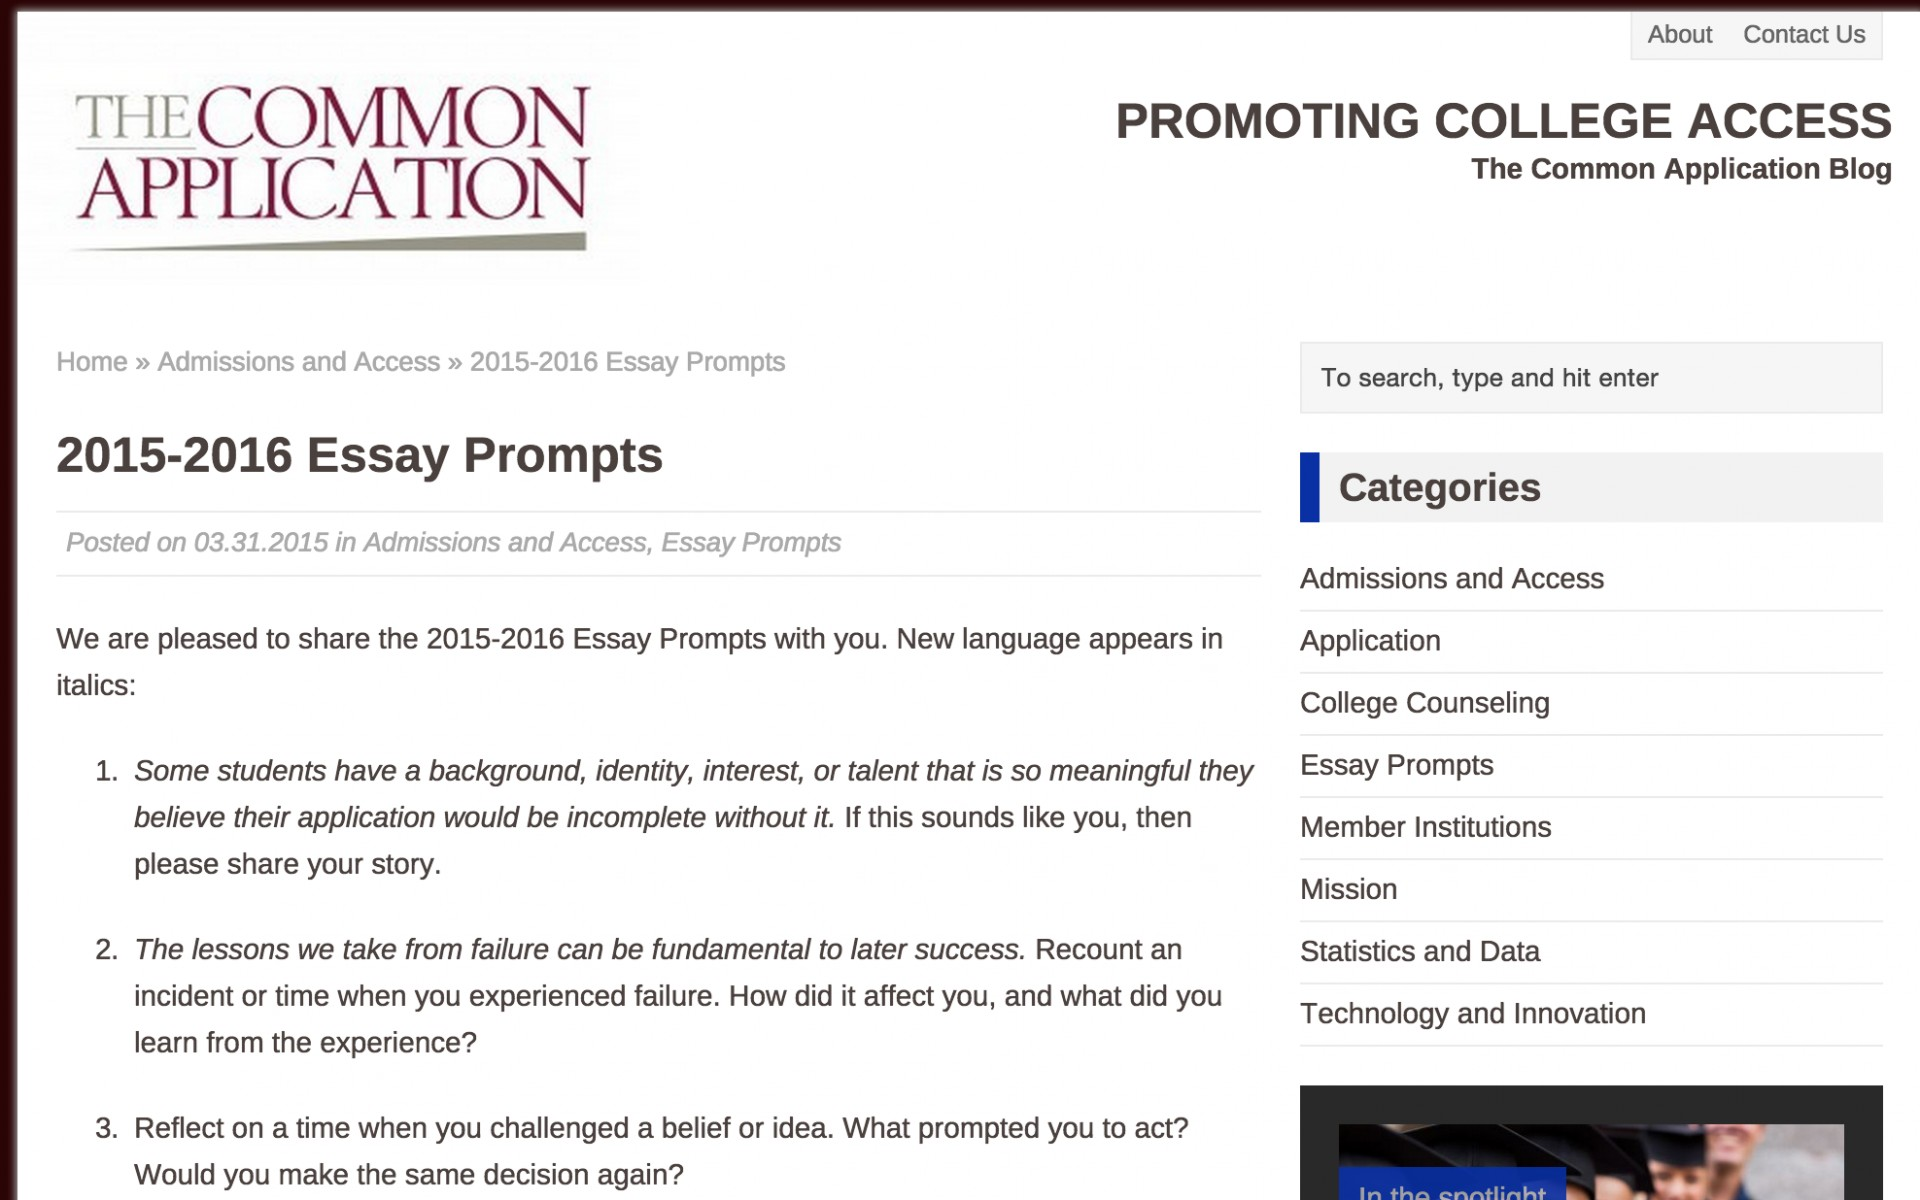 001 Essay Example Screen Shot At Pm Common App Staggering Questions 2020 2017-18 1920